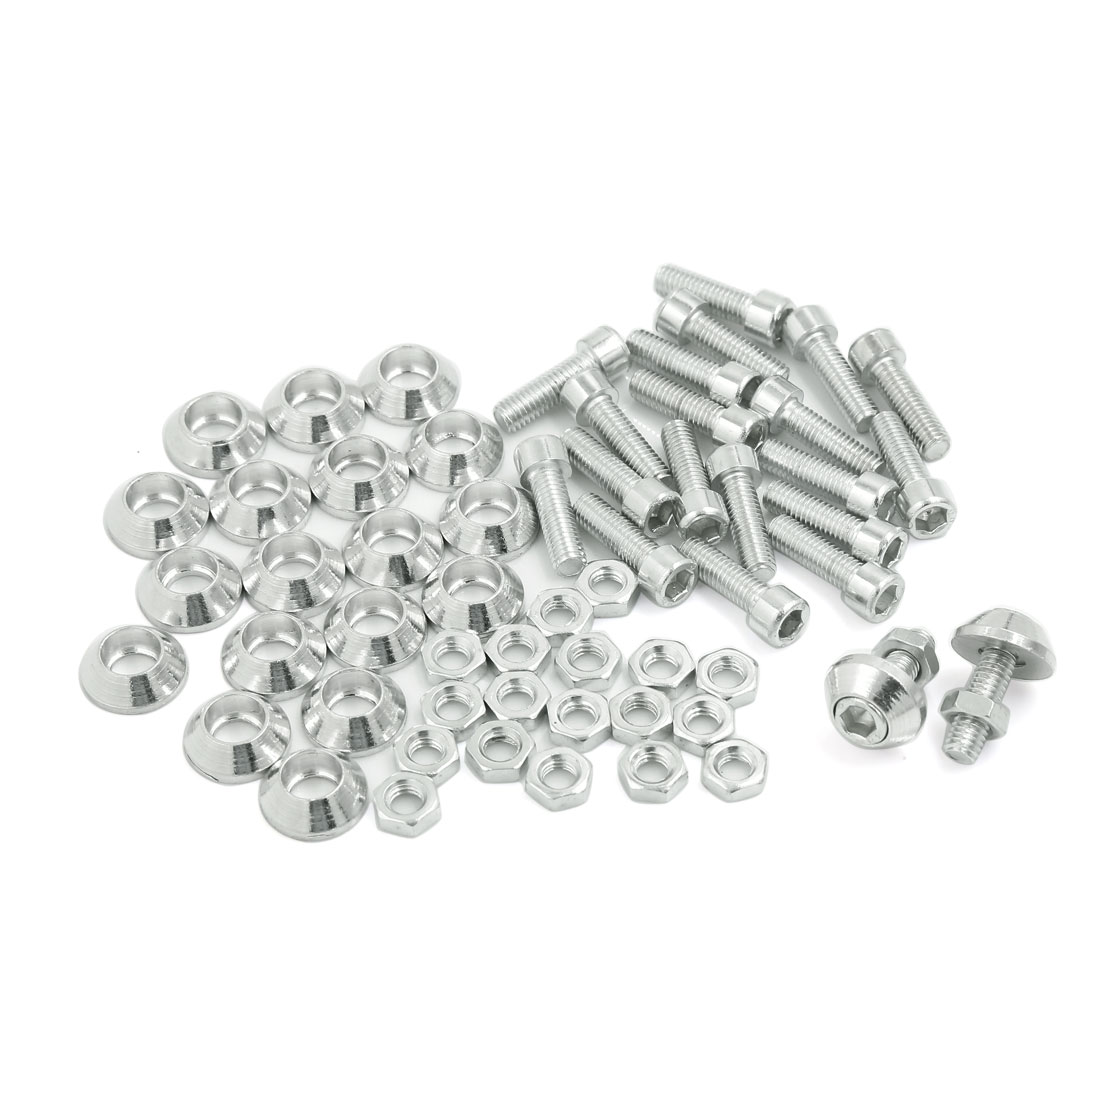 6mm Dia Motorcycle Car License Plate Frame Screw Bolt Decor Sliver Tone 20 Pcs